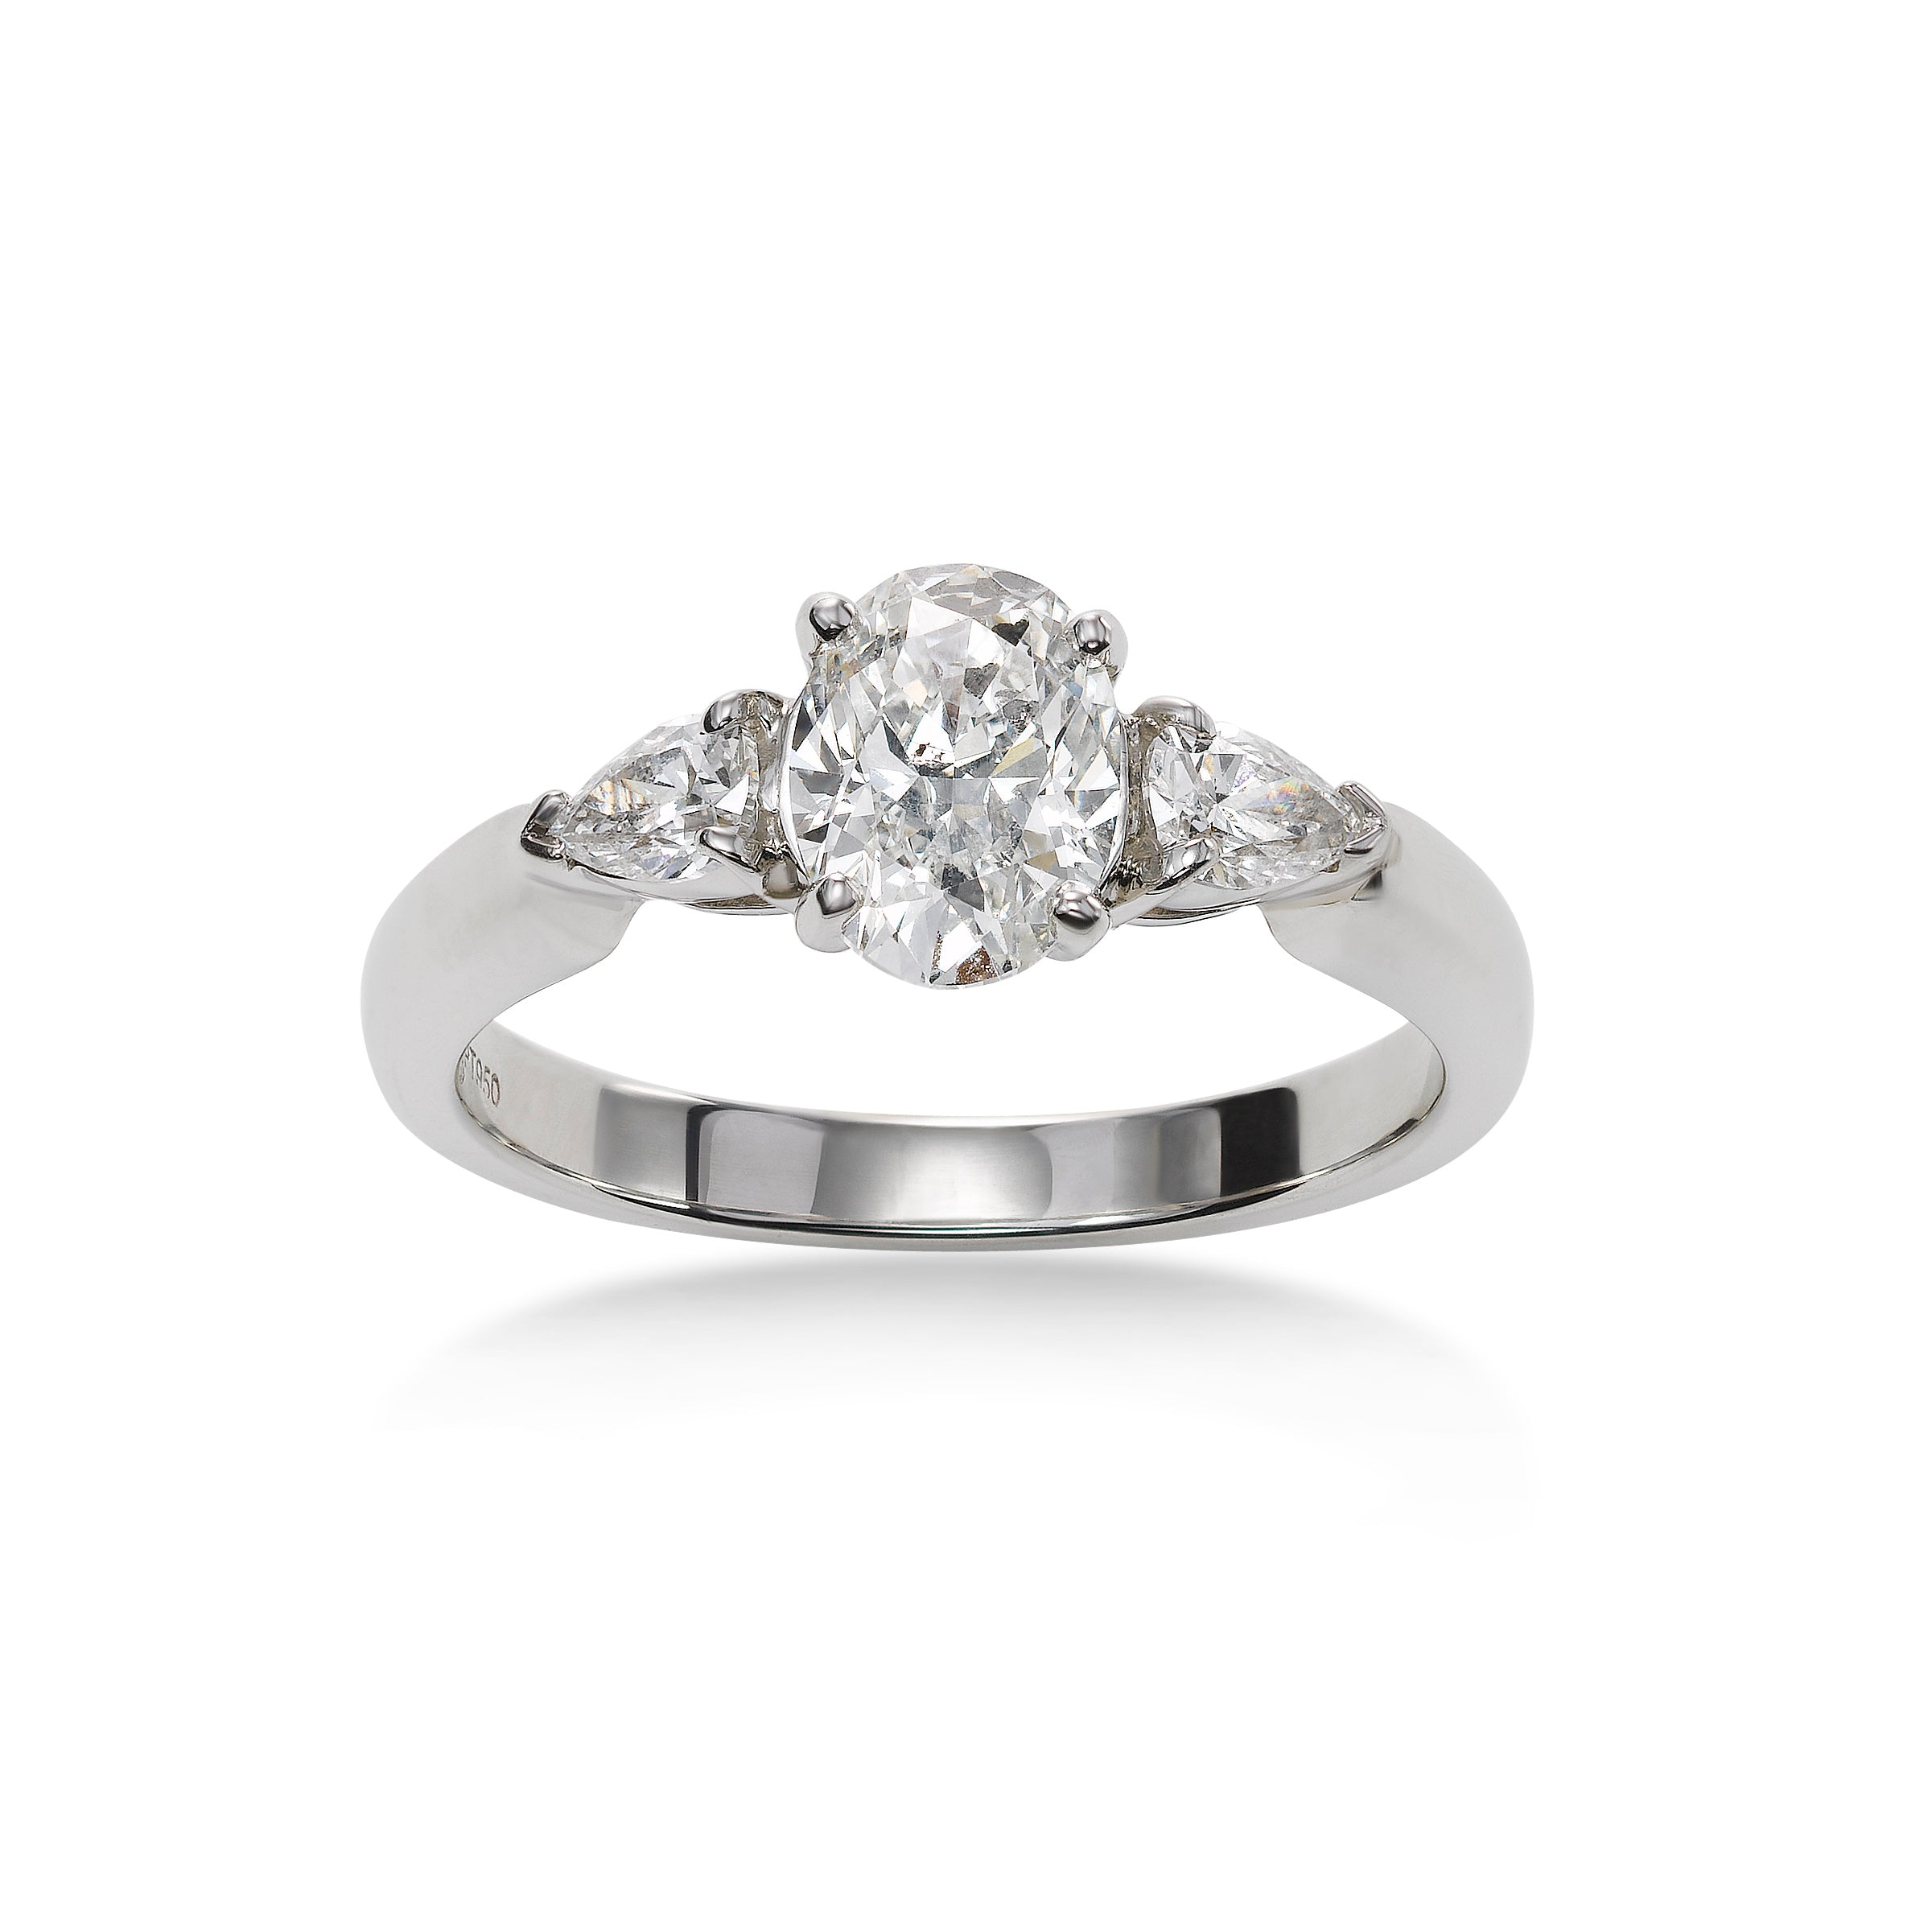 Oval Shaped Diamond Engagement Ring, 14K White Gold